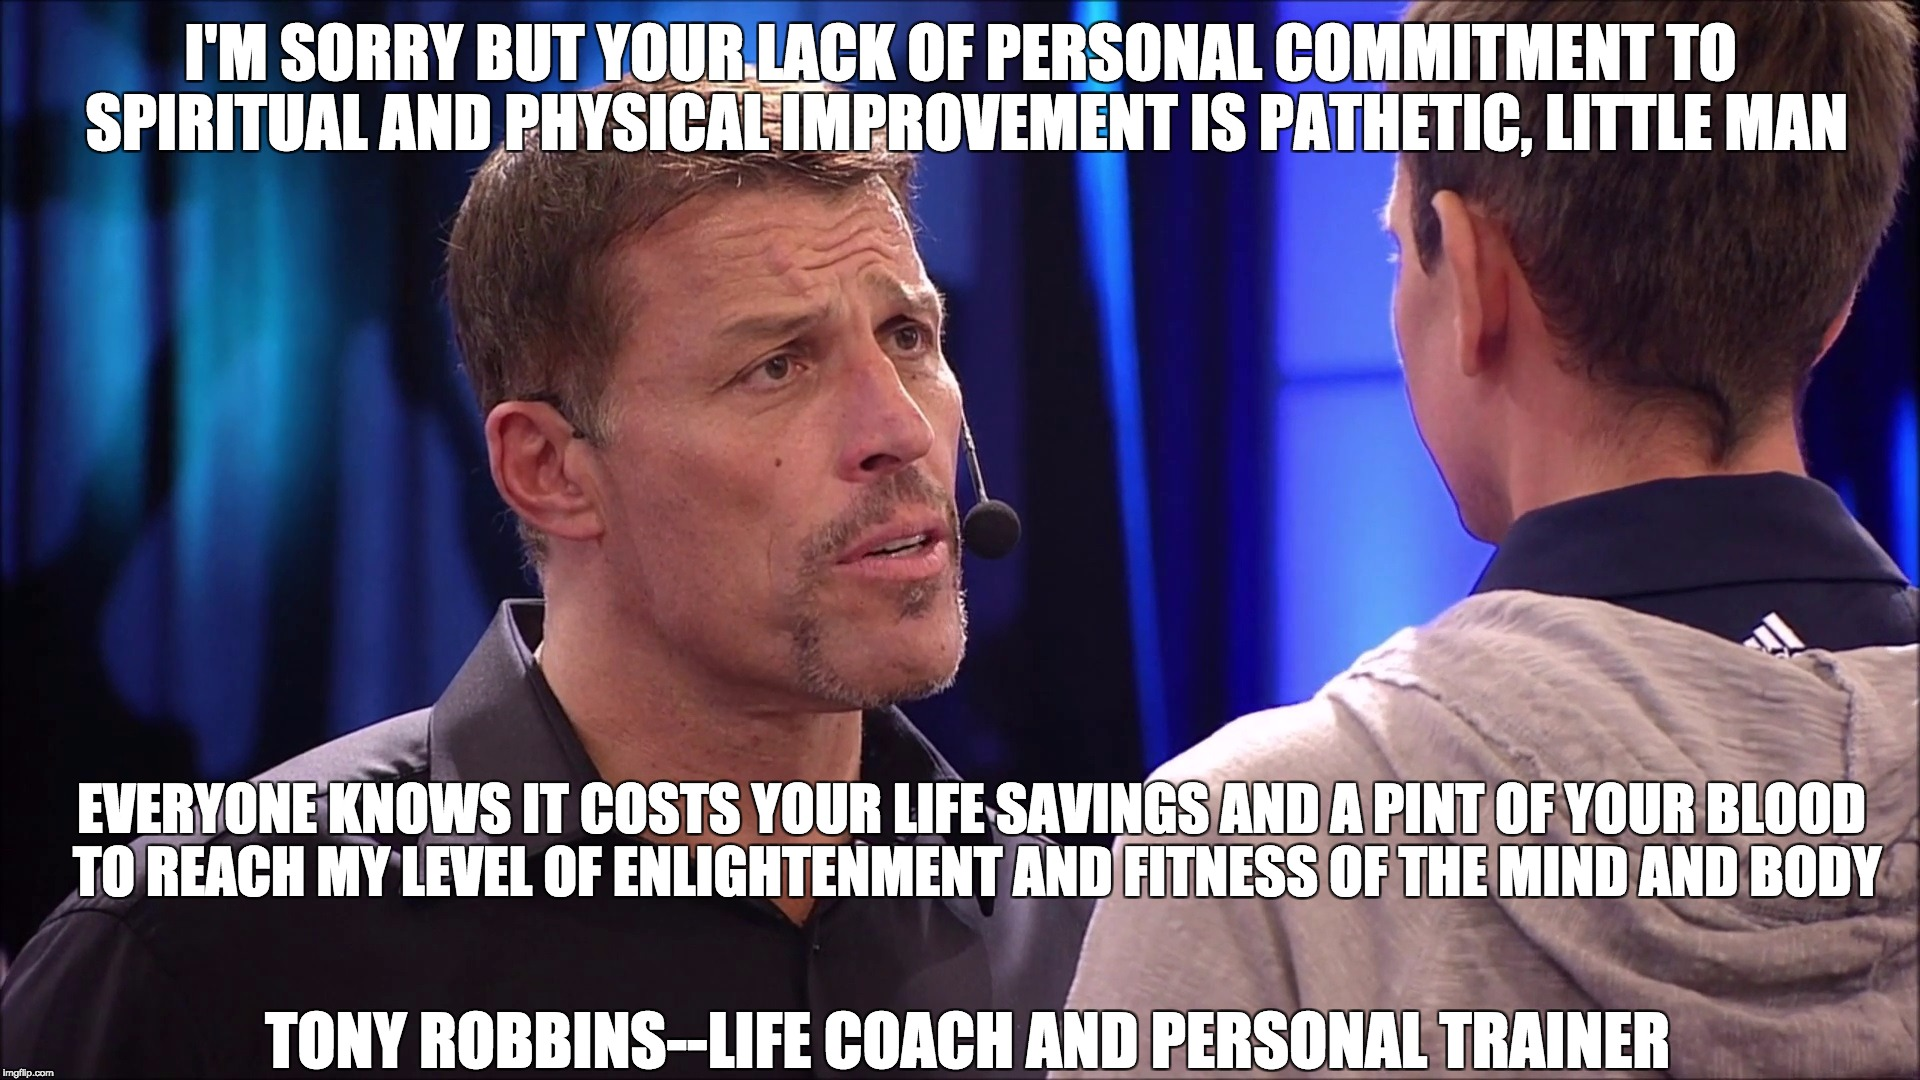 I'M SORRY BUT YOUR LACK OF PERSONAL COMMITMENT TO SPIRITUAL AND PHYSICAL IMPROVEMENT IS PATHETIC, LITTLE MAN EVERYONE KNOWS IT COSTS YOUR LI | image tagged in tony robbins is bullshit | made w/ Imgflip meme maker